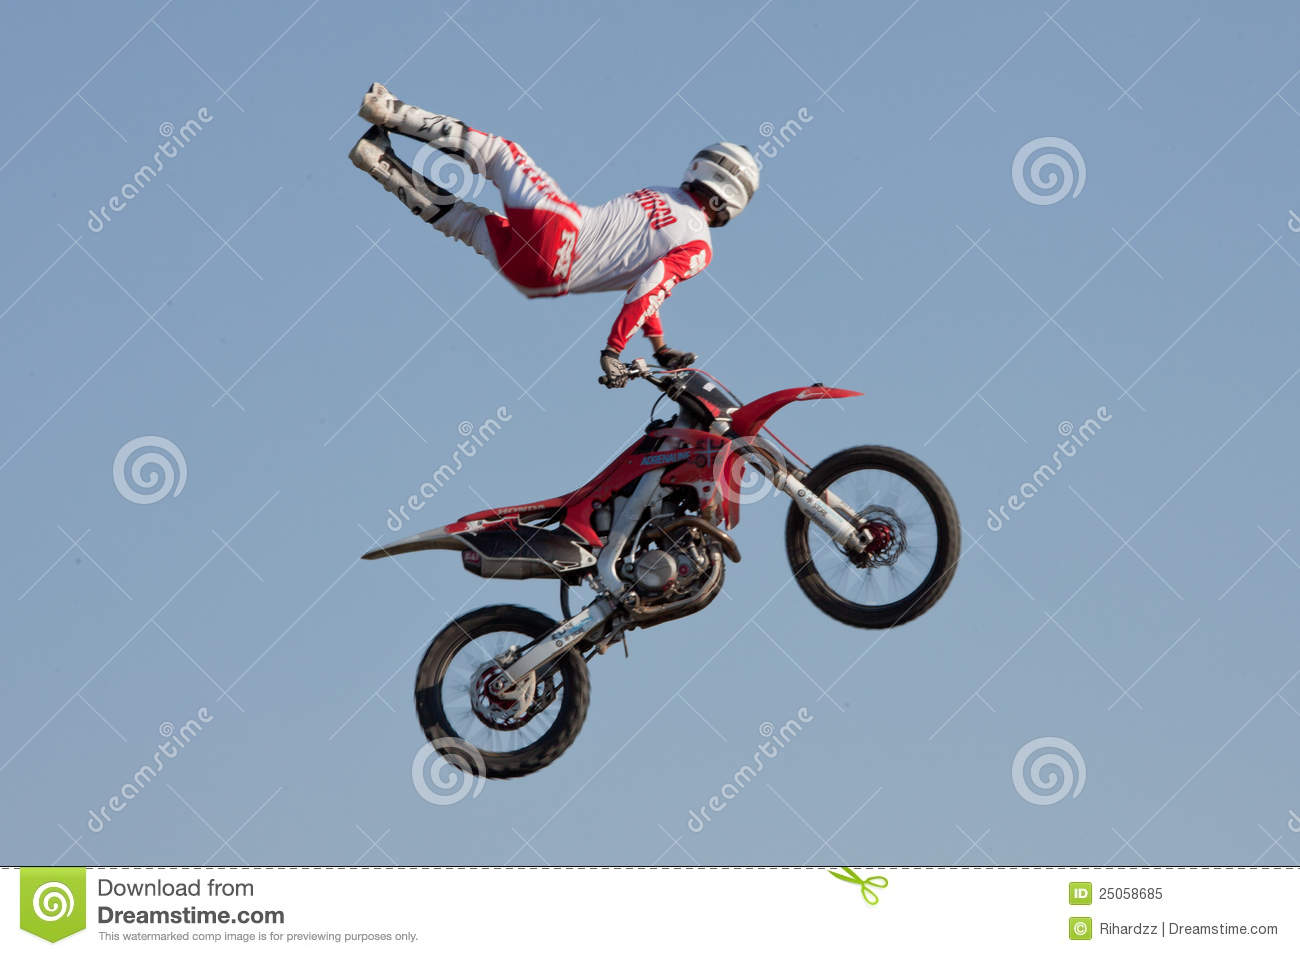 x games freestyle motocross riders